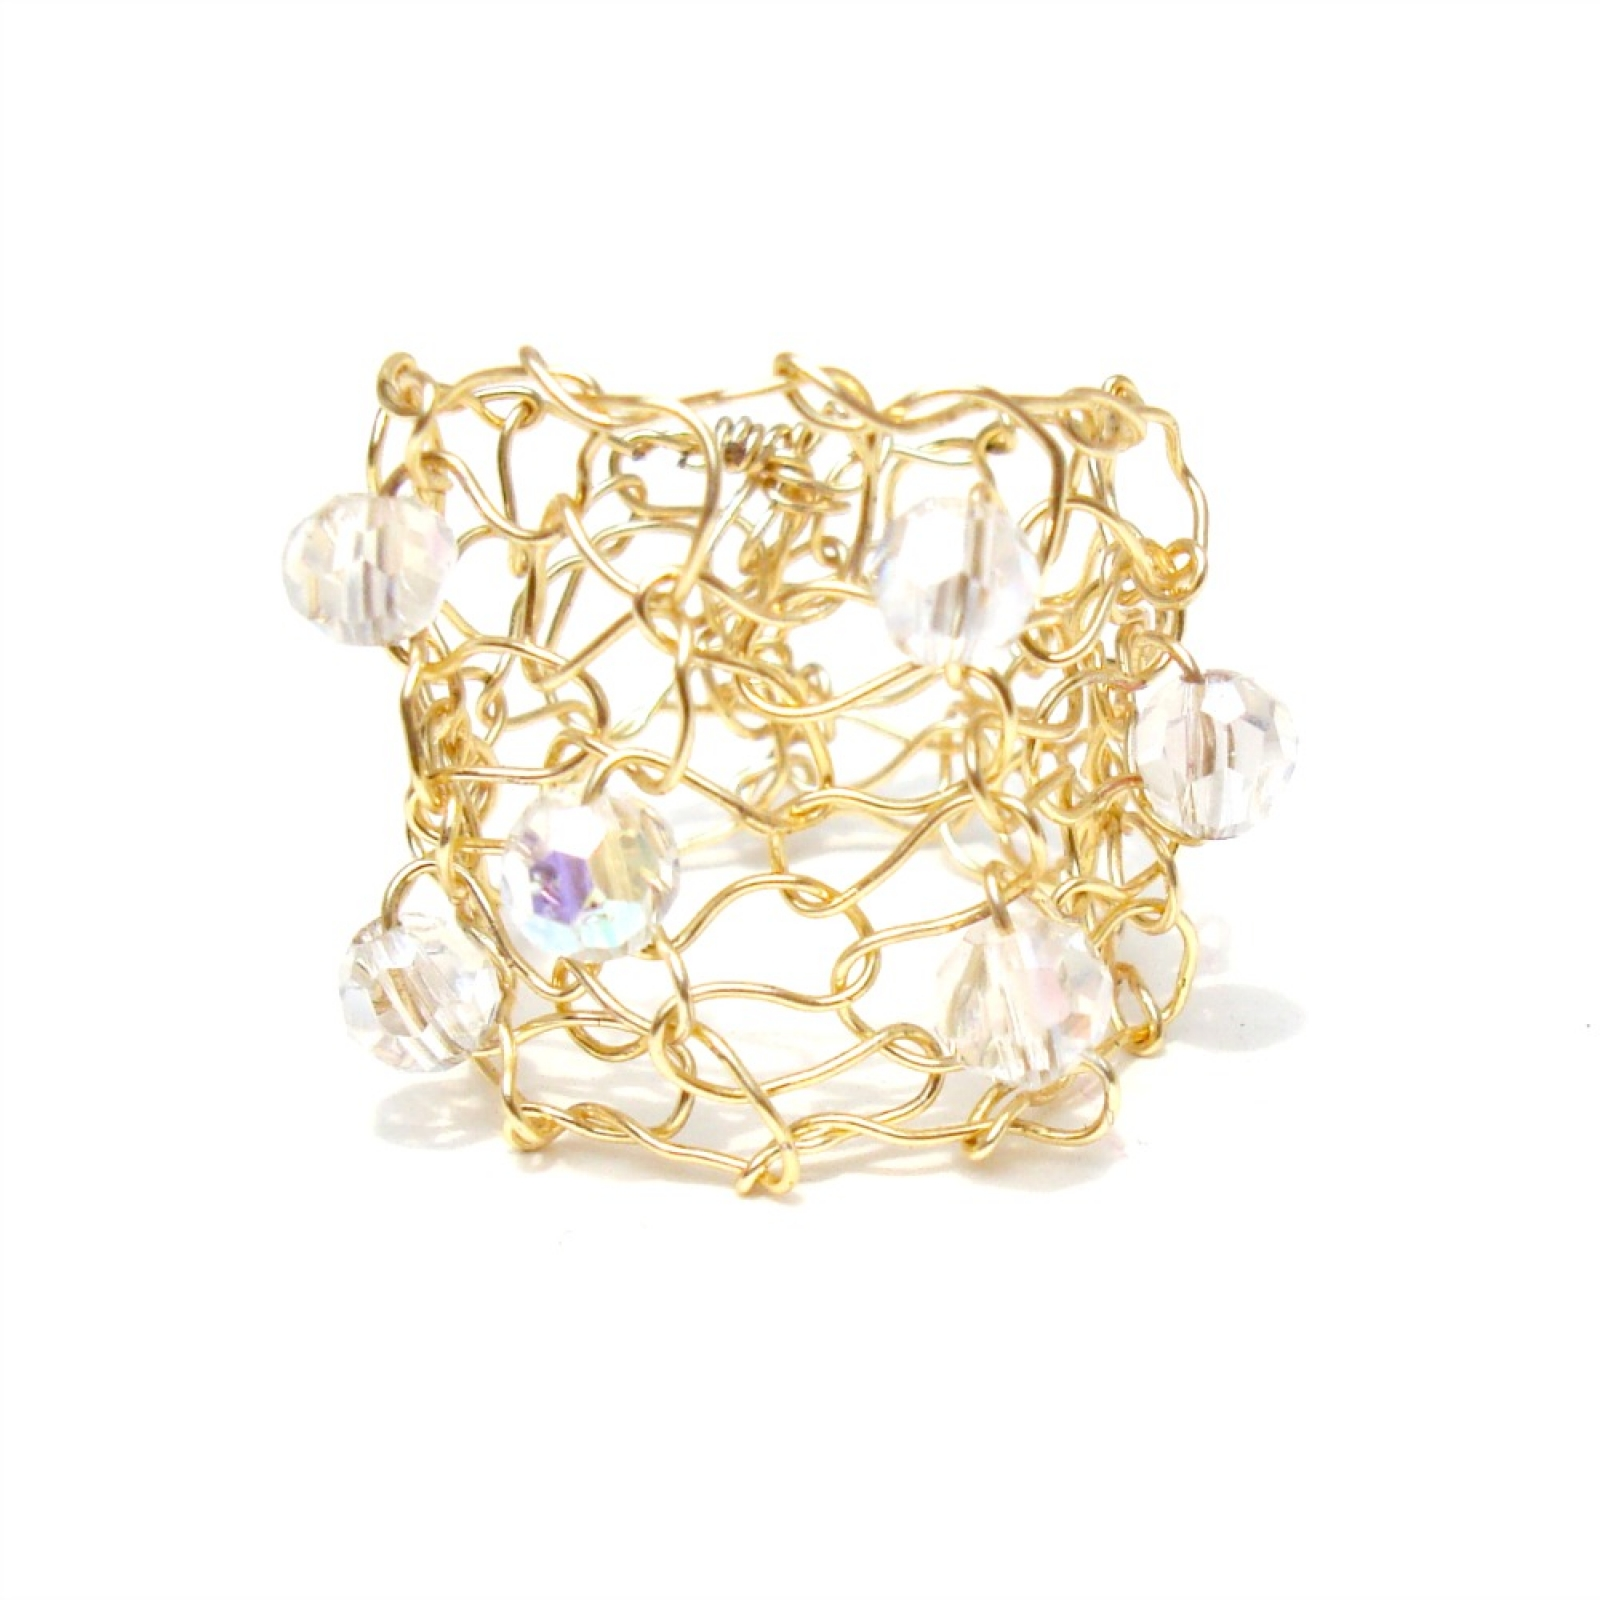 Little gold ring aurora borealis crystal gold wire knit ring ...